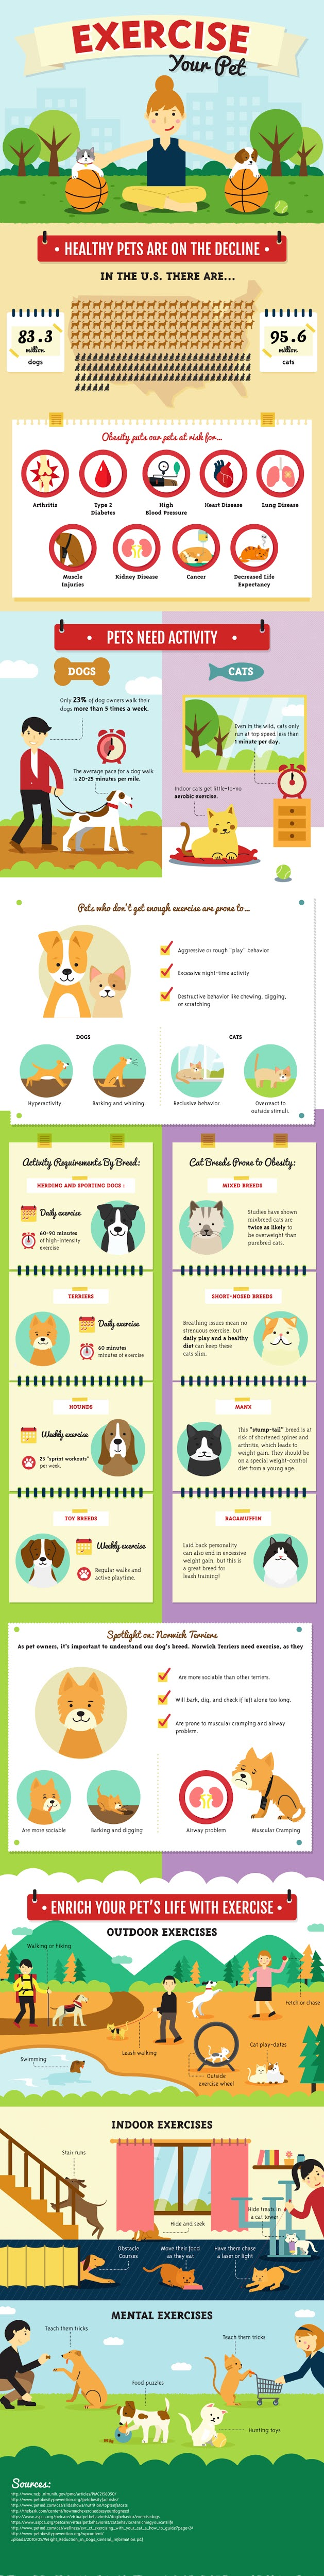 Exercise your Pet: Simple Solutions & Easy Answers #infographic #pets & Animal #Pet Exercises